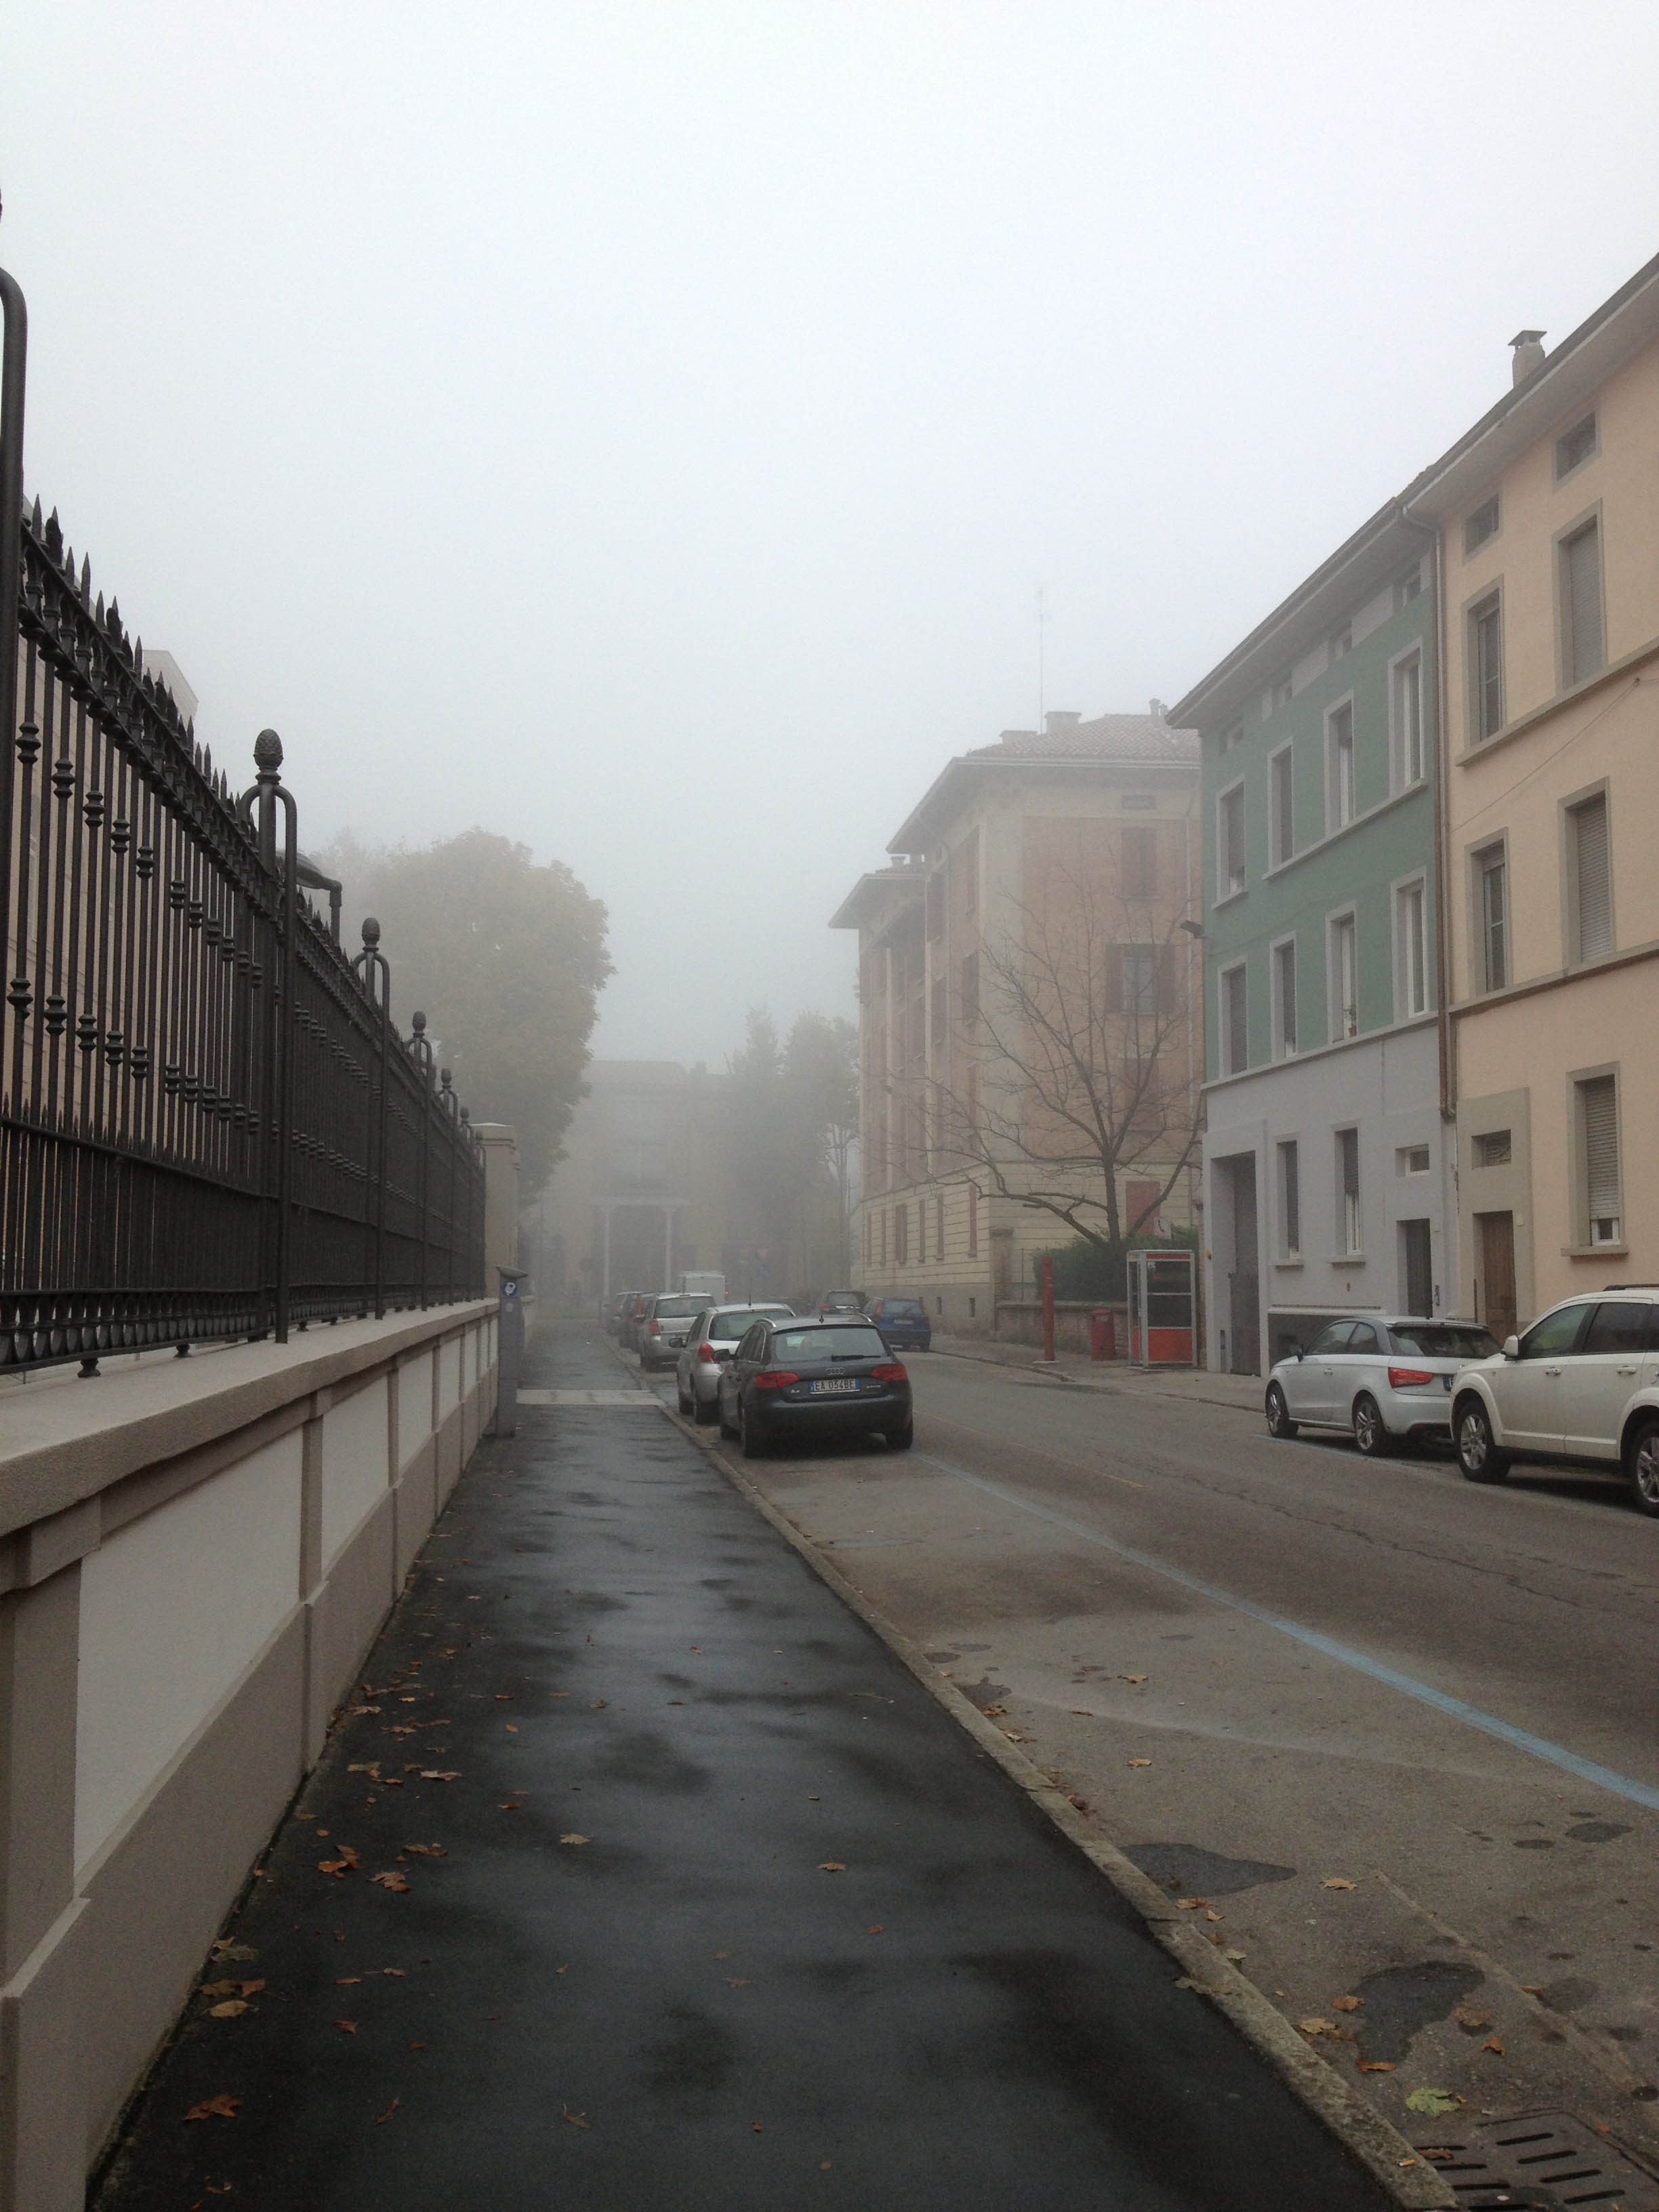 On the way to work. It was very foggy most of the time I was there.